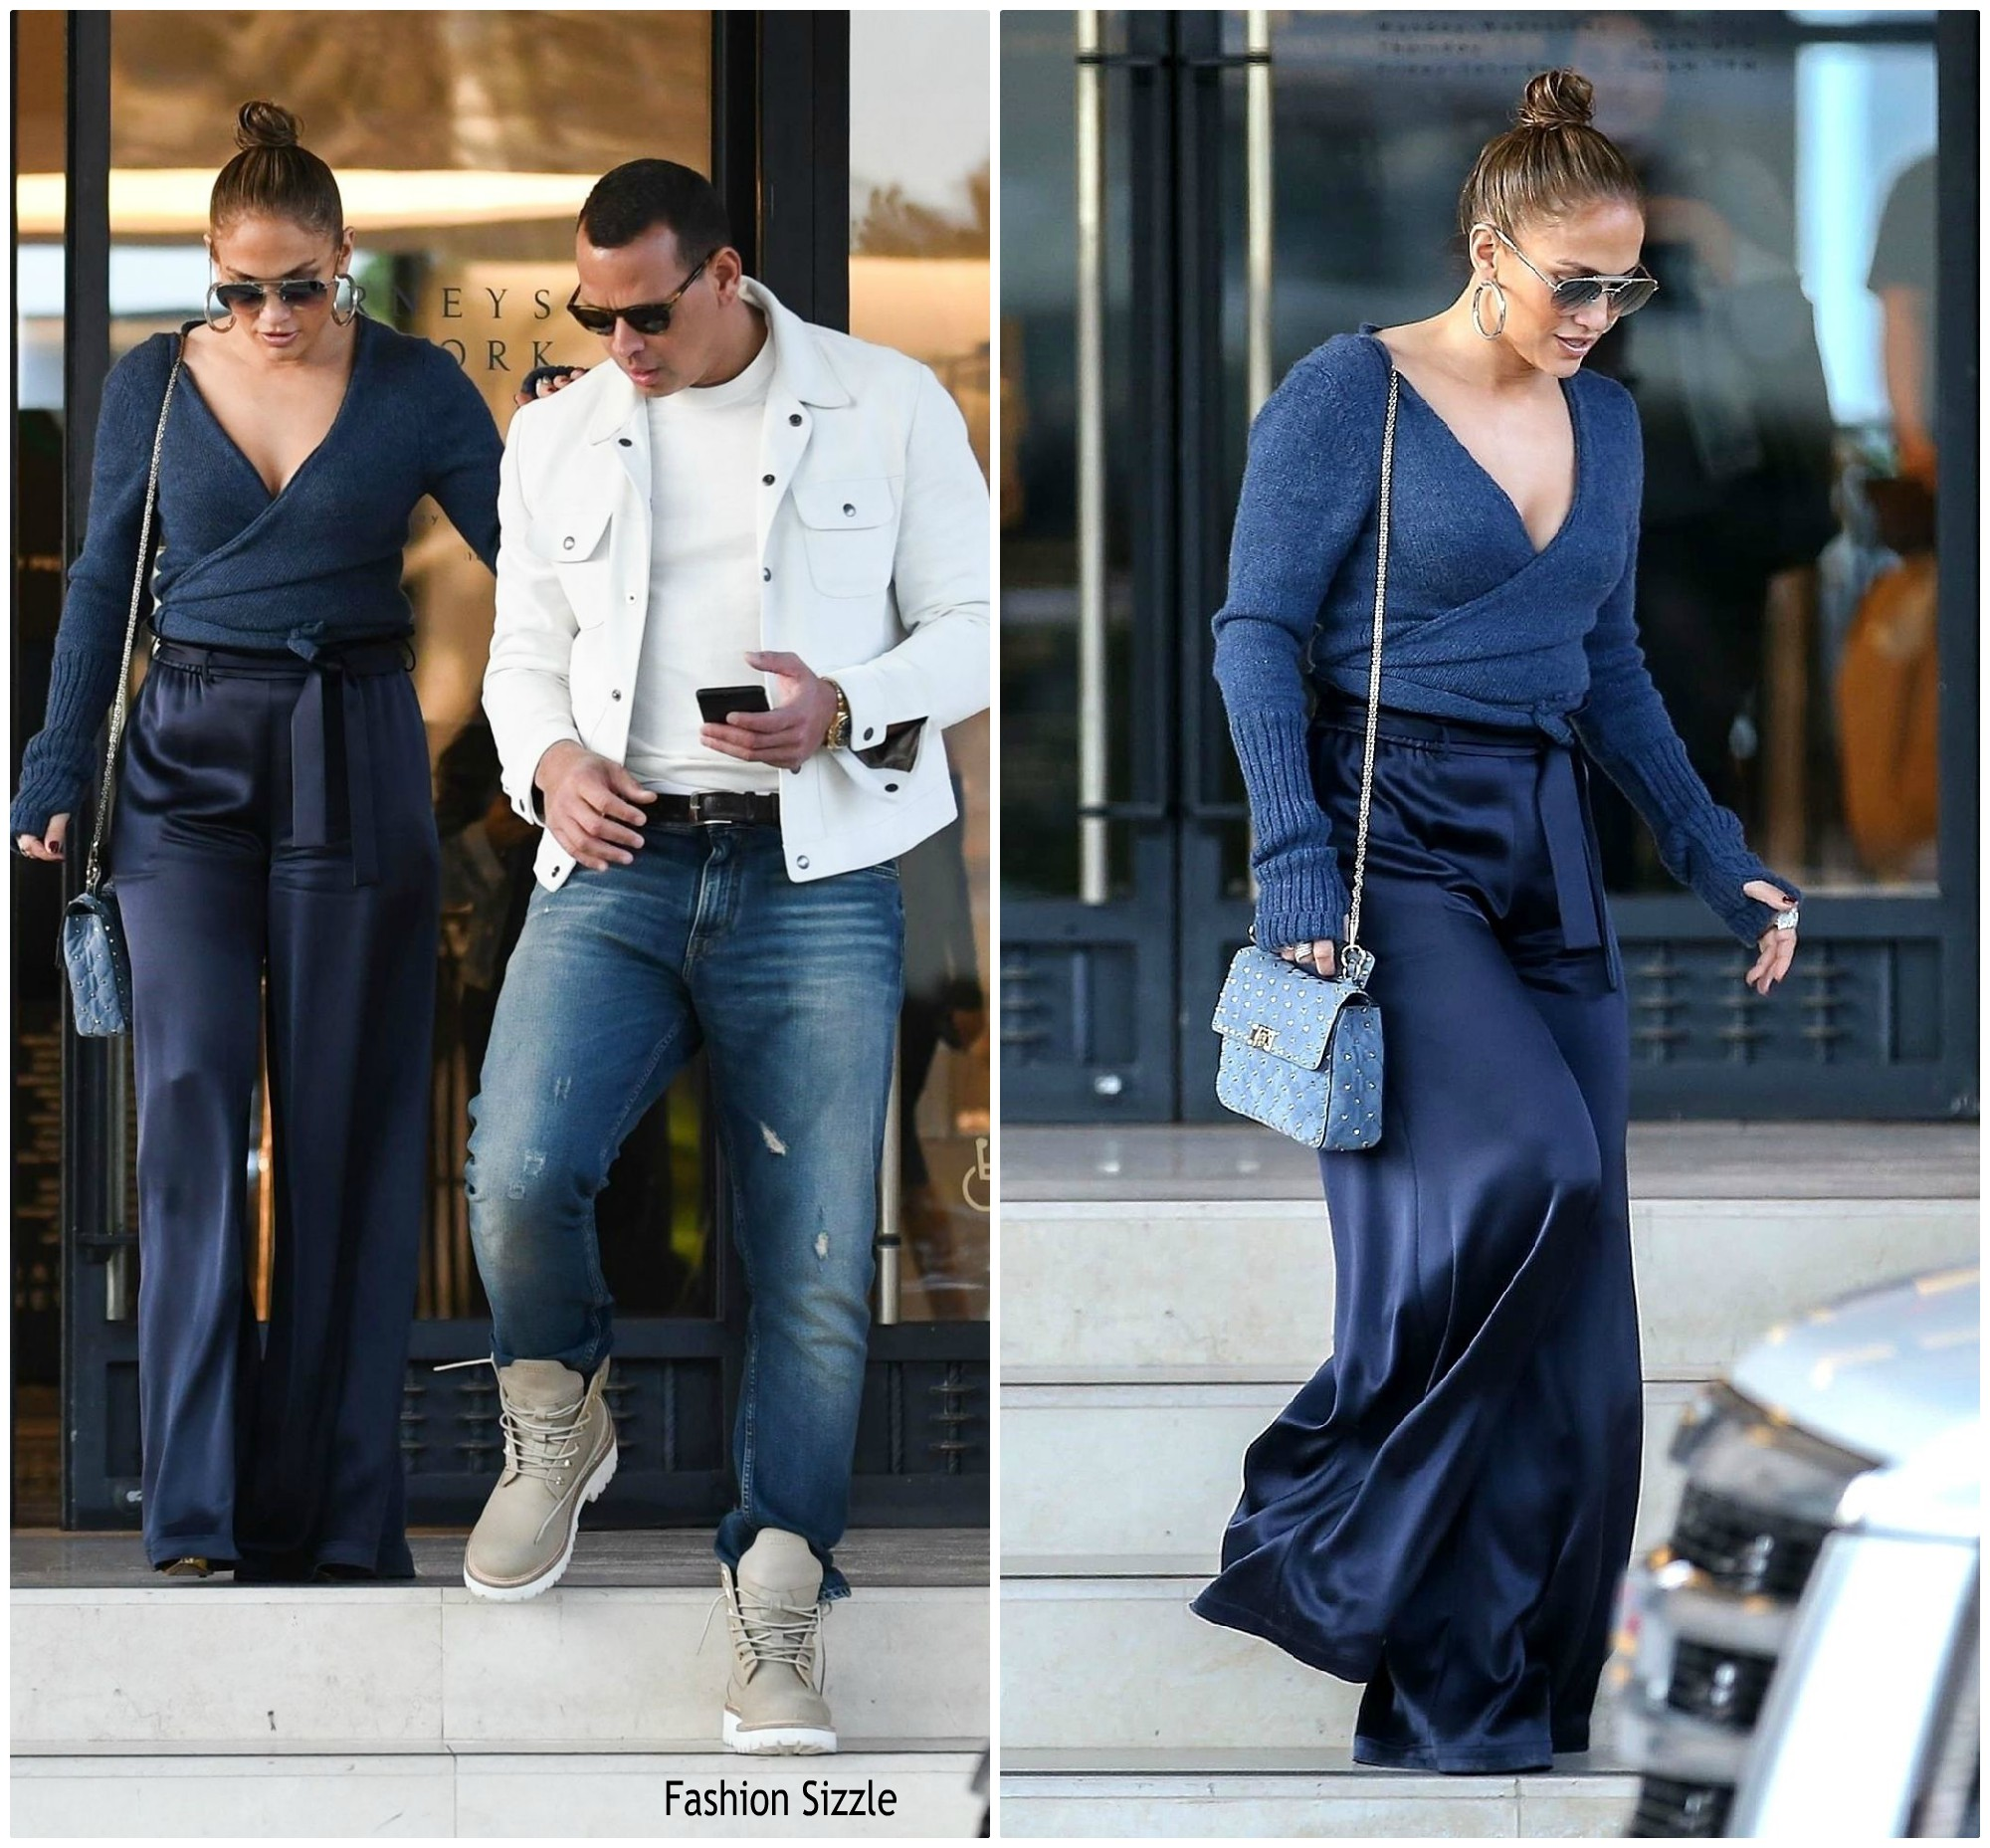 jennifer-lopez-in-where-moutains-meet-jordan-osman-barneys-in-la